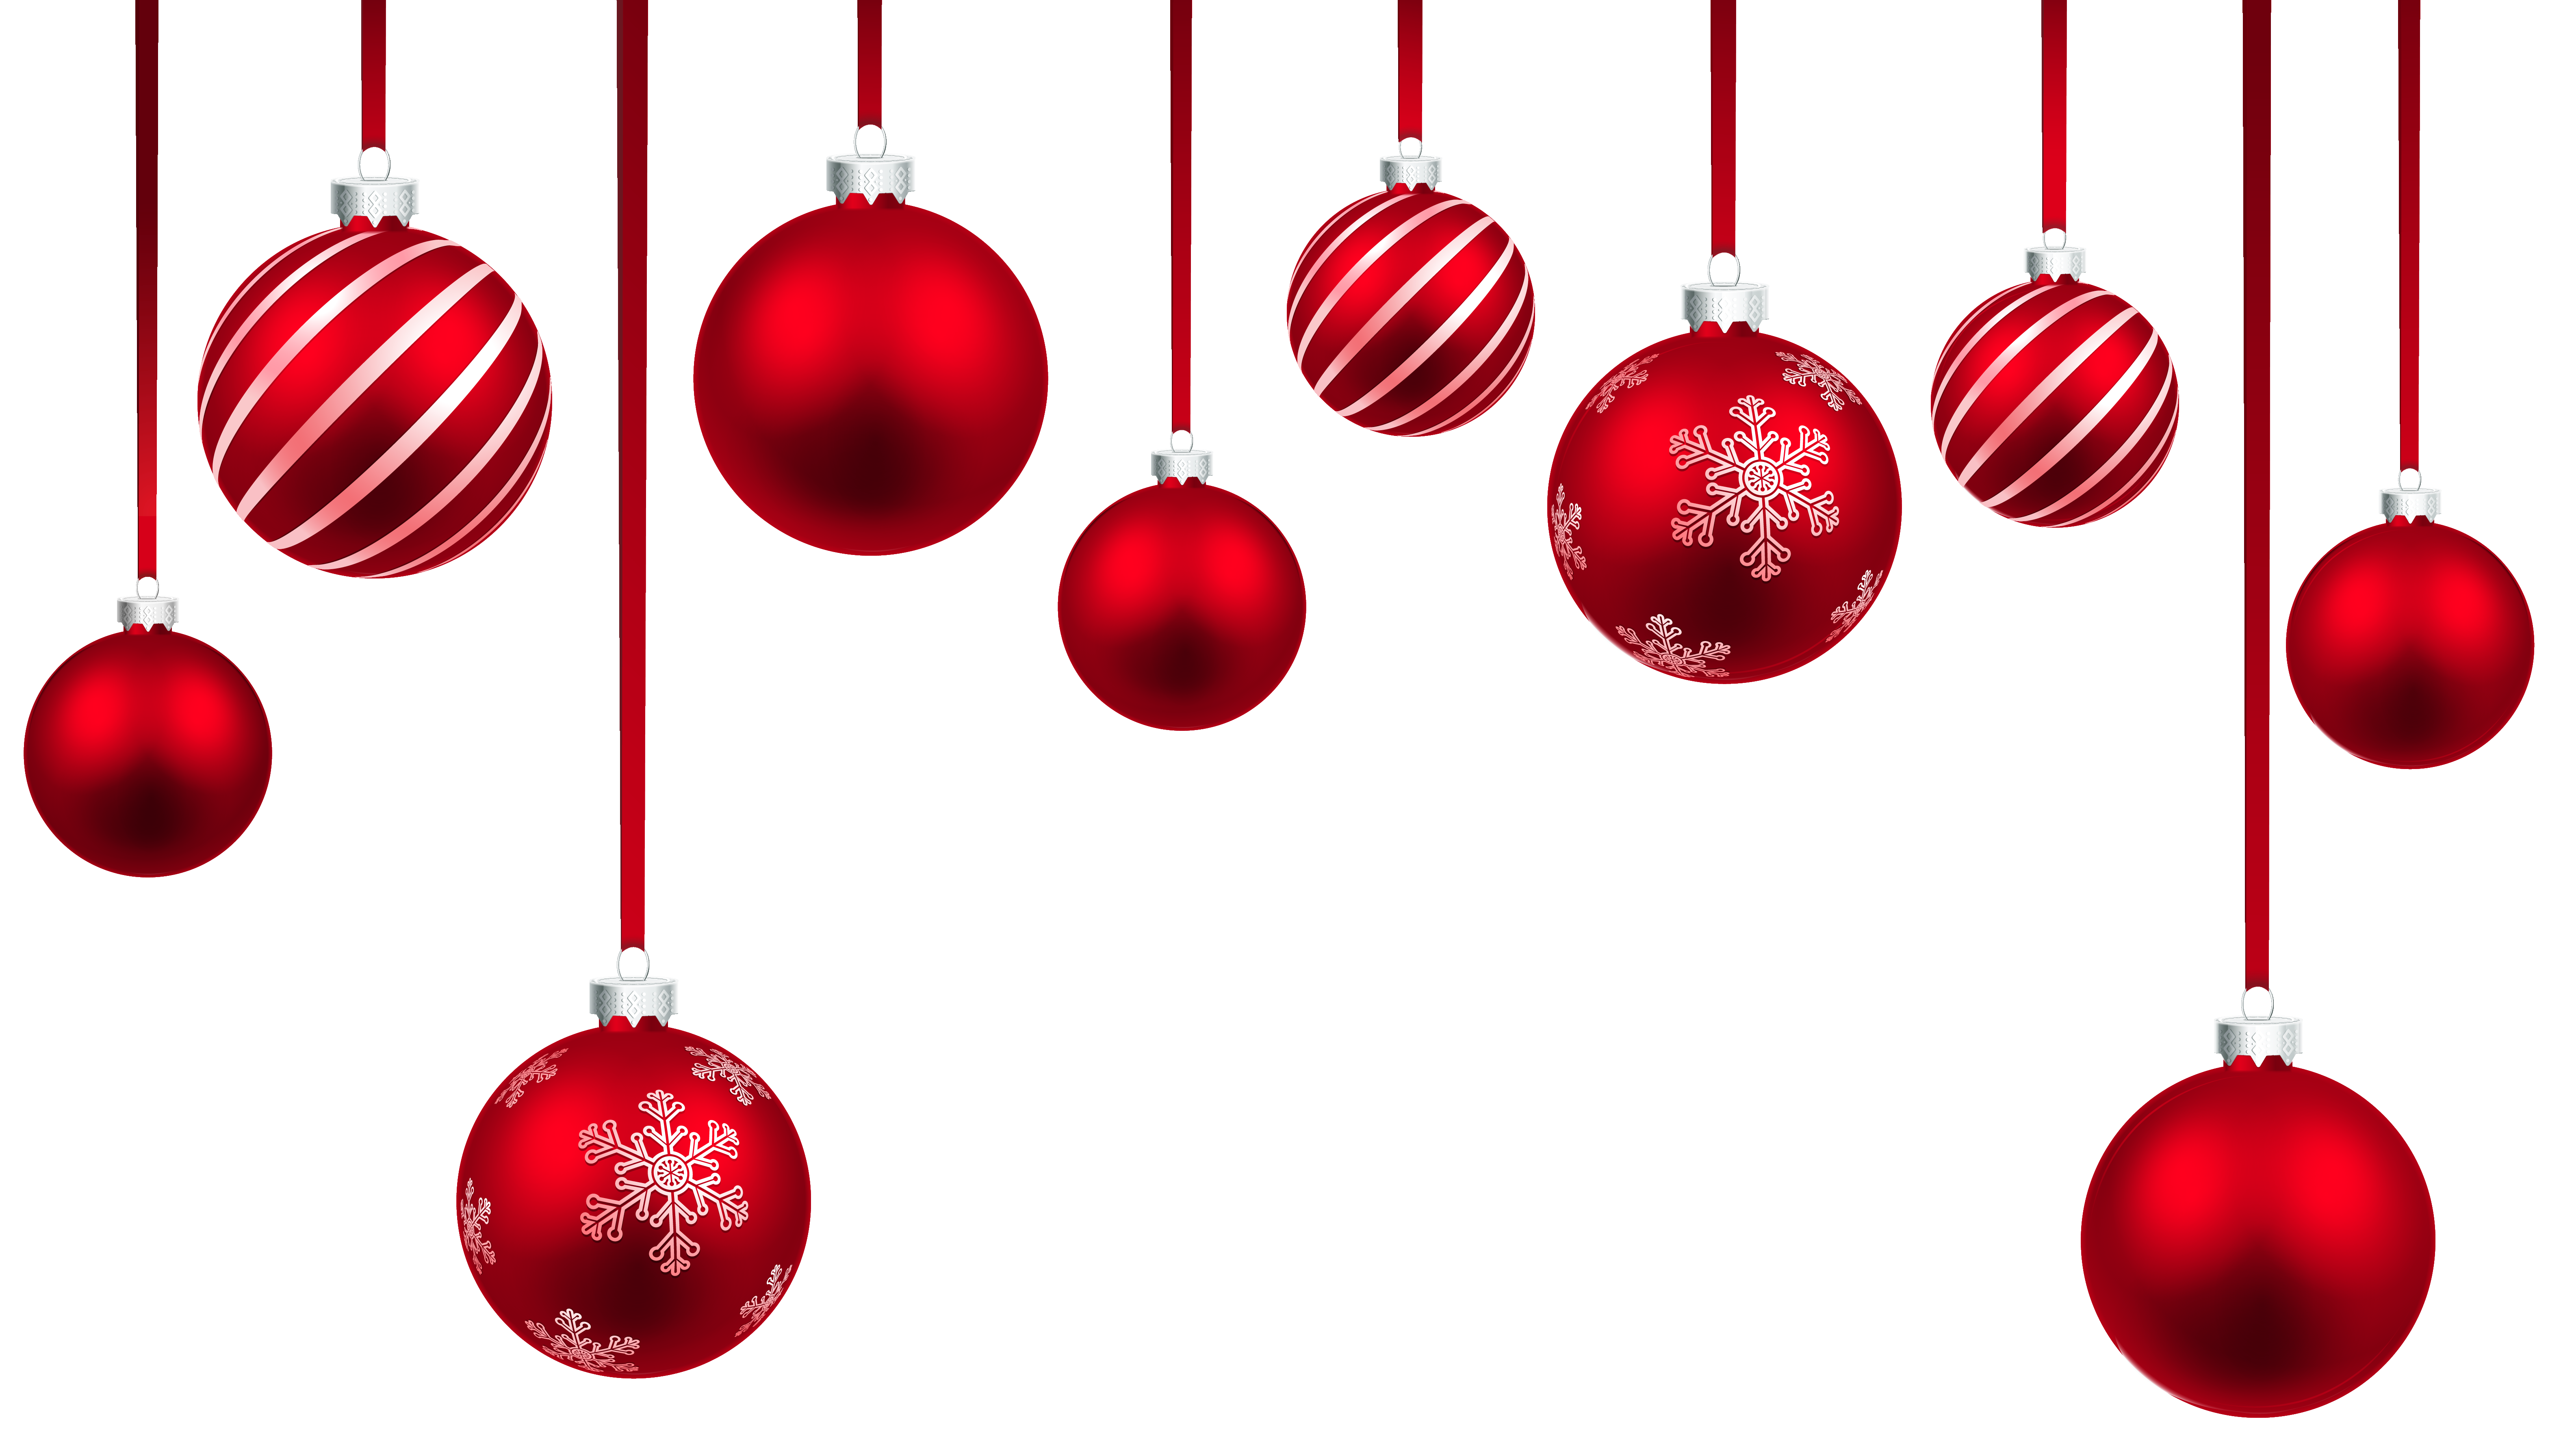 Red Christmas Hanging Balls Decor Png Clipart Image Gallery Yopriceville High Quality Im Christmas Balls Image Christmas Hanging Decorations Red Christmas